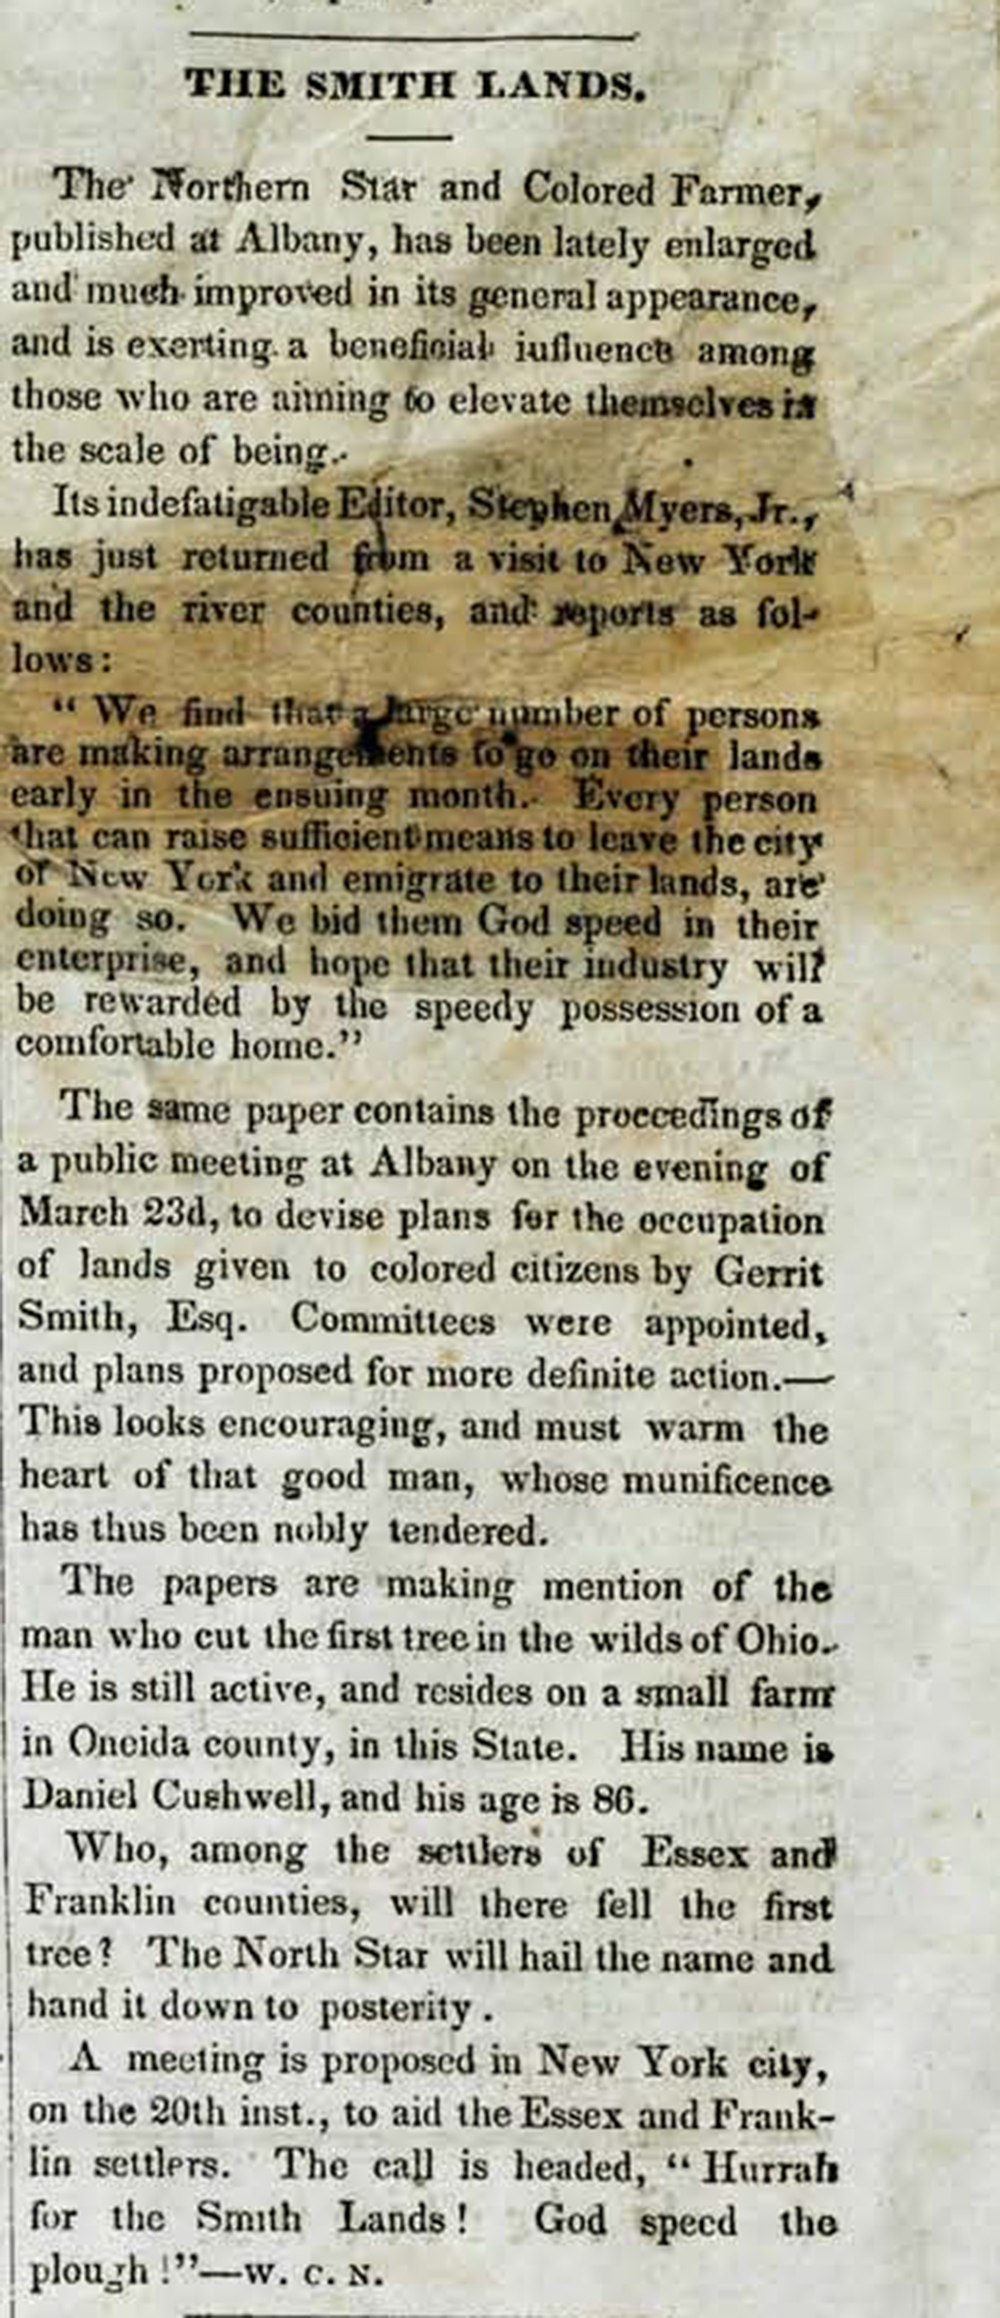 The North Star, April 14, 1848. Central Library of Rochester and Monroe County, Historical Newspapers Collection.